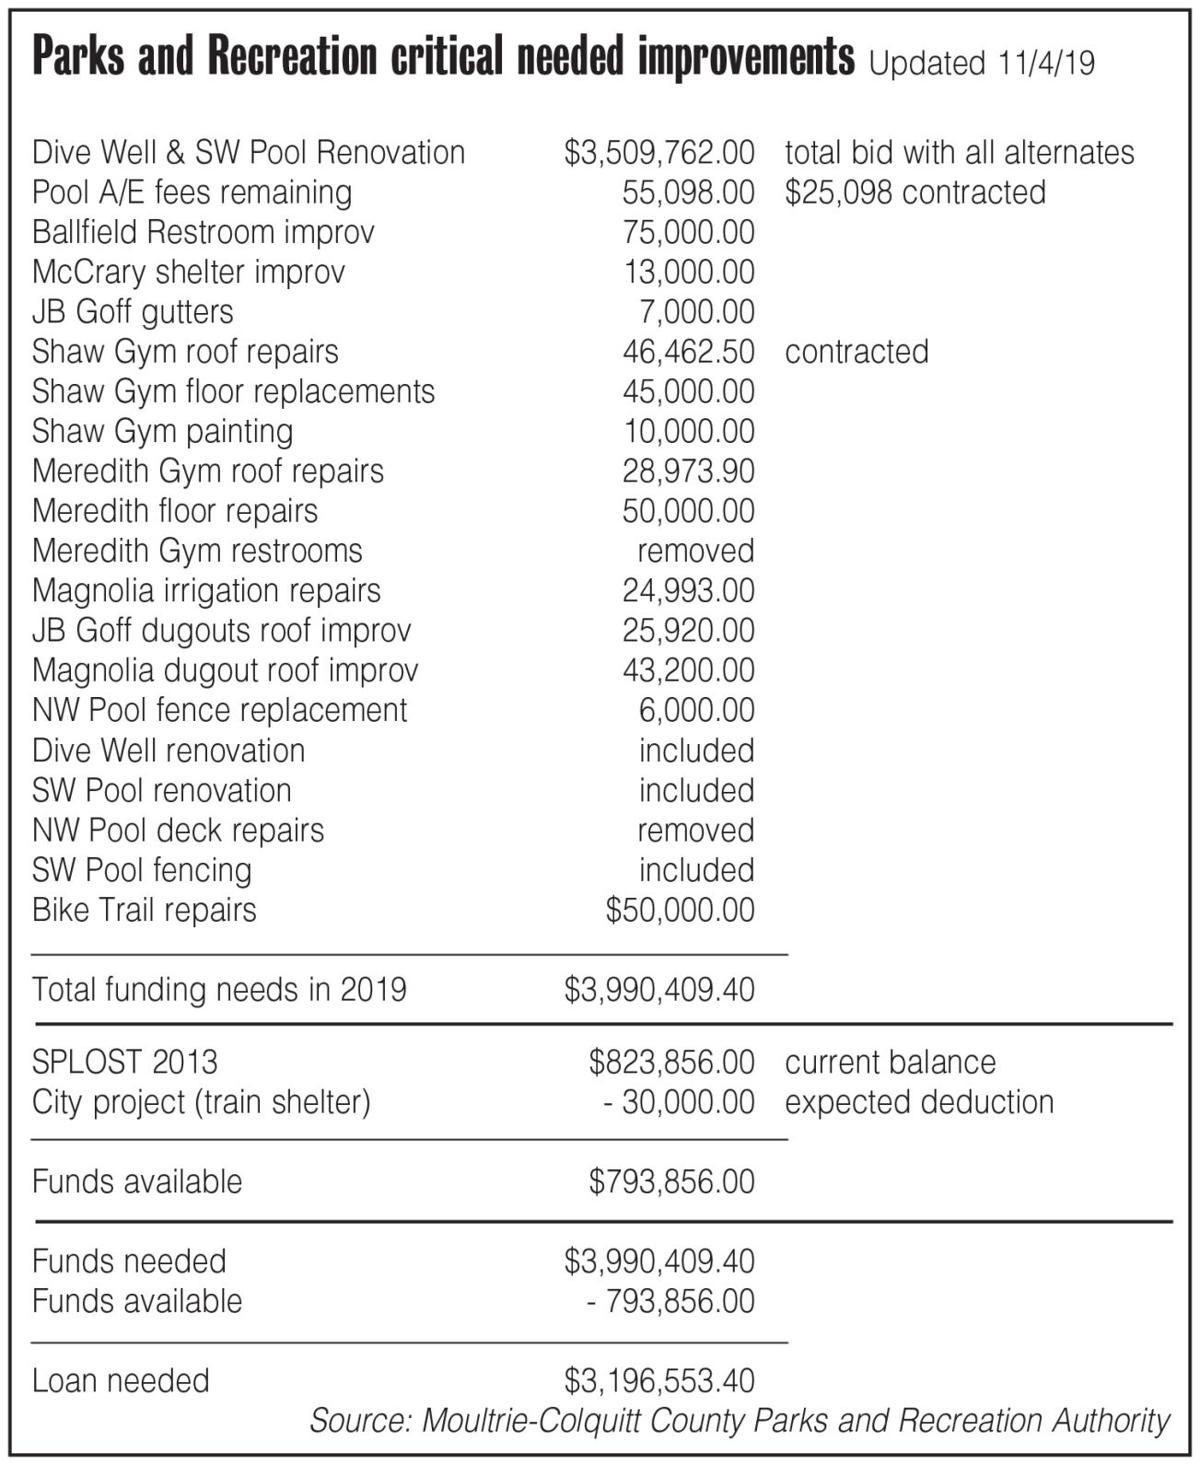 Estimated costs of critically needed improvements